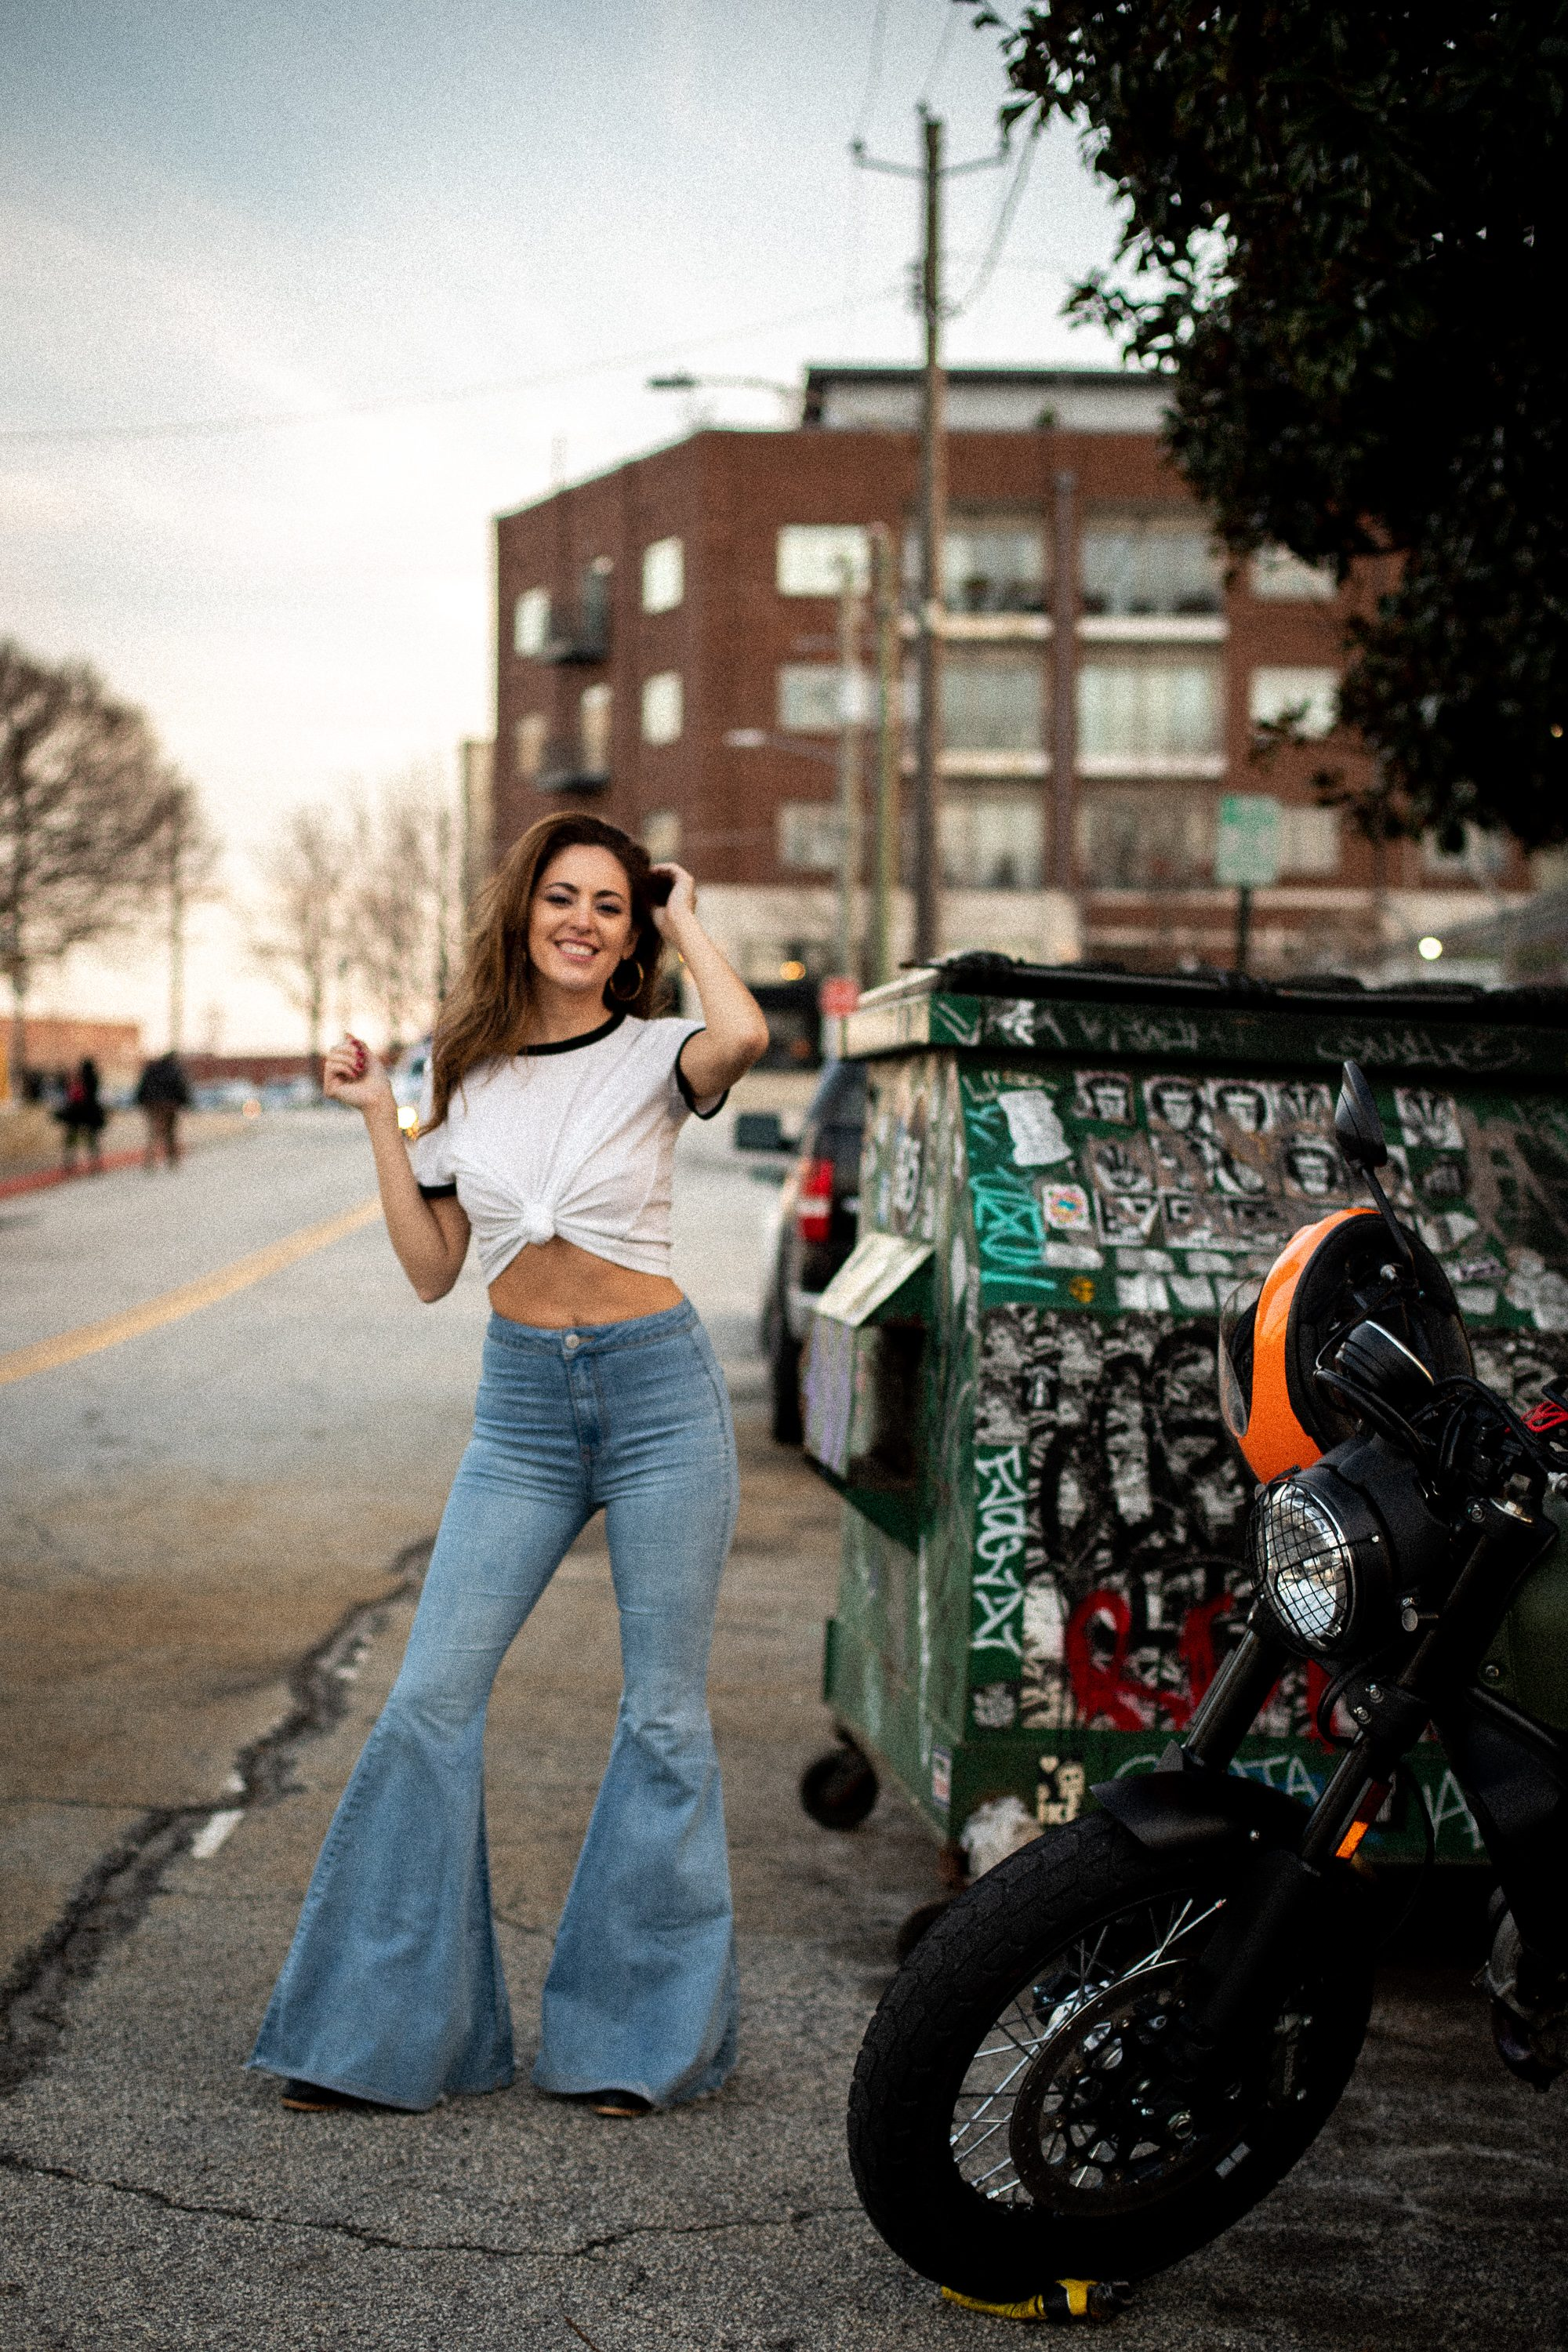 70s style, casual 70s outfit ideas, how to wear bell bottoms, how to wear a ringer tee, elliott street pub, casual style